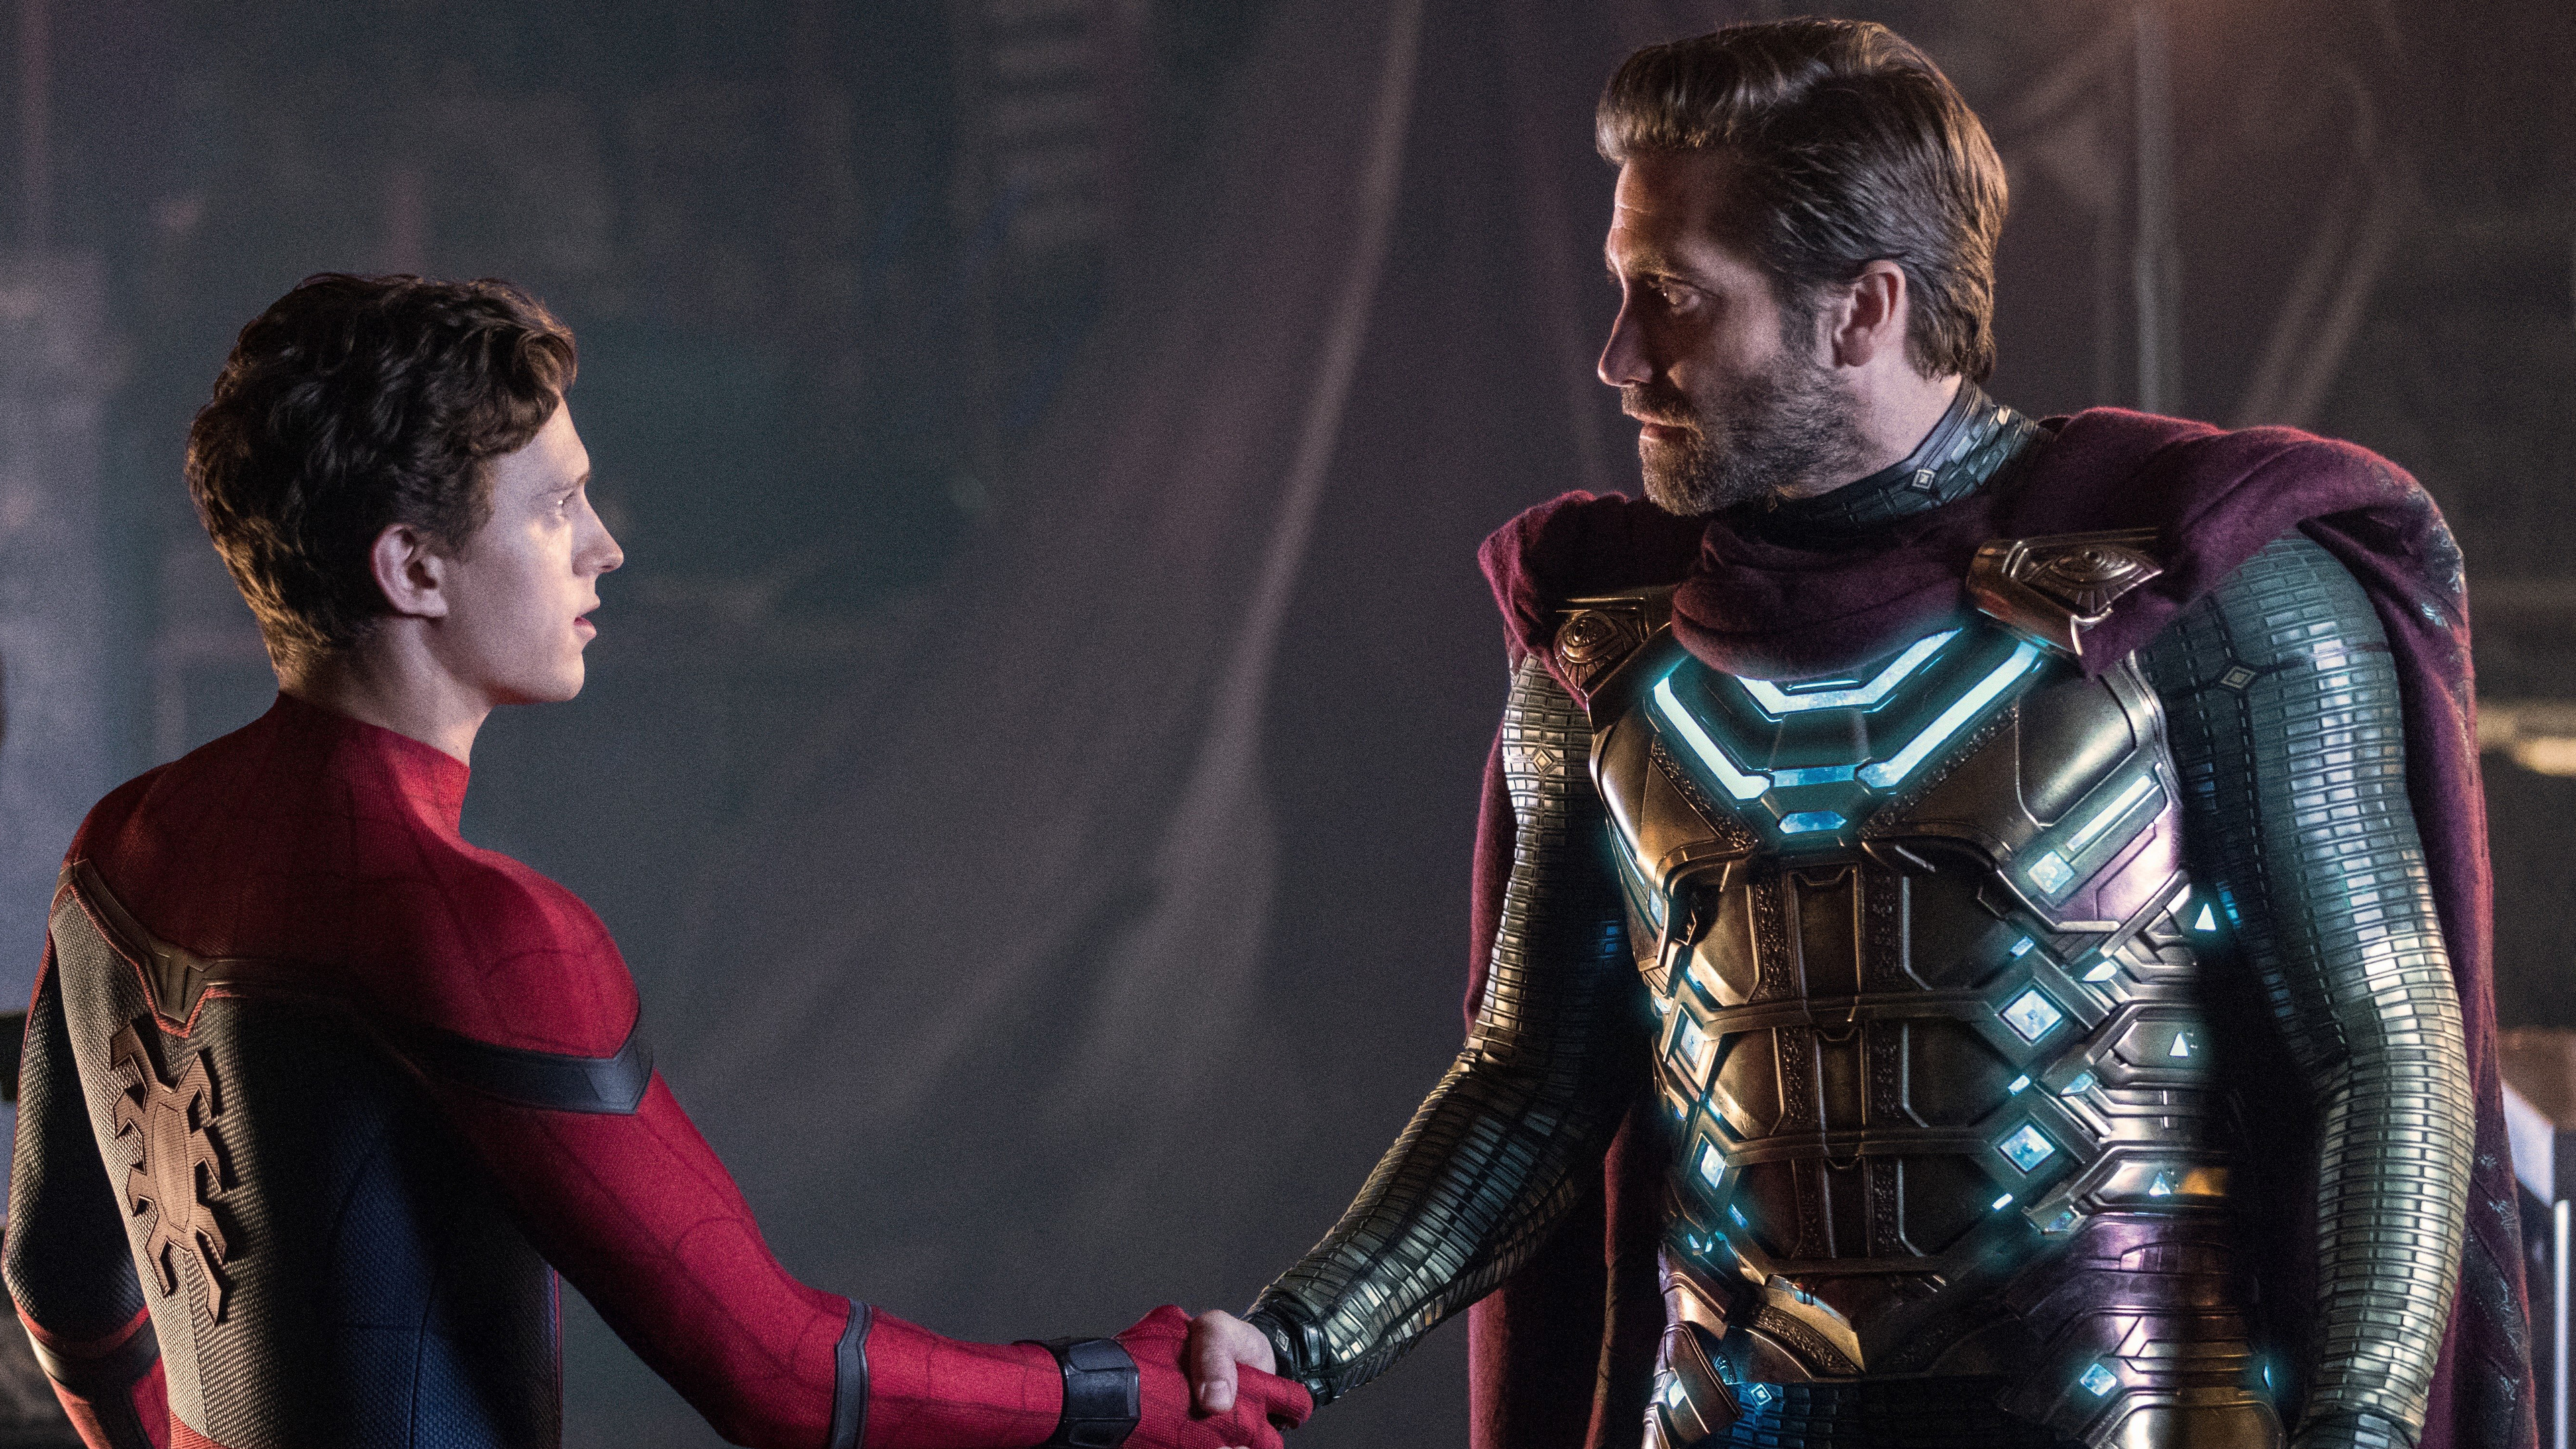 spider man far from home and mysterio 4k 1558220208 - Spider Man Far From Home And Mysterio 4k - tom holland wallpapers, superheroes wallpapers, spiderman wallpapers, spiderman far from home wallpapers, mysterio wallpapers, movies wallpapers, hd-wallpapers, 4k-wallpapers, 2019 movies wallpapers